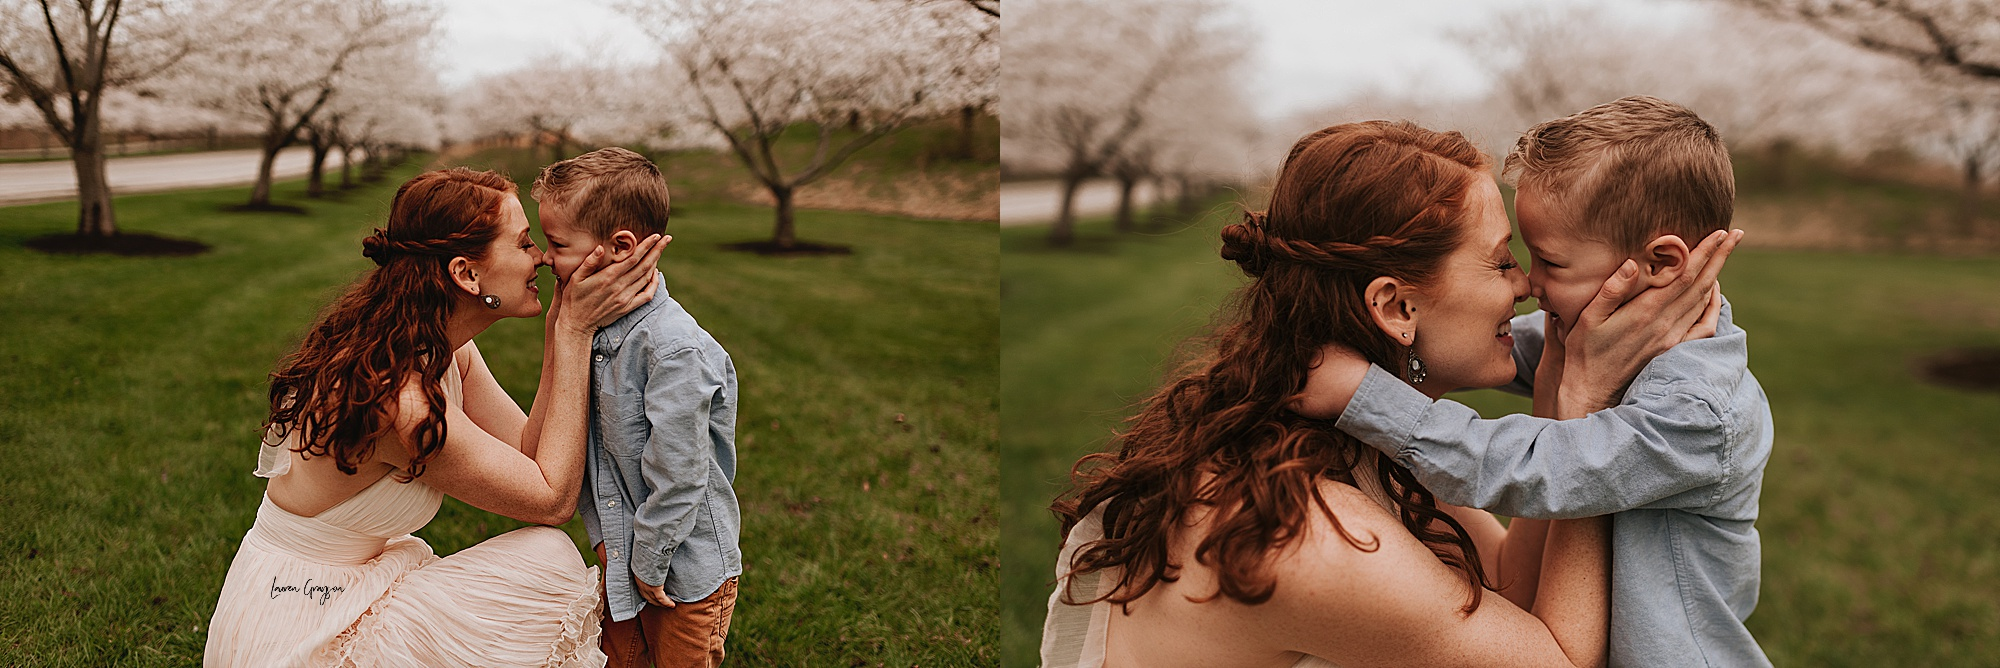 lauren-grayson-photography-cleveland-ohio-motherhood-family-child-photo-session-cherry-blossoms_0013.jpg